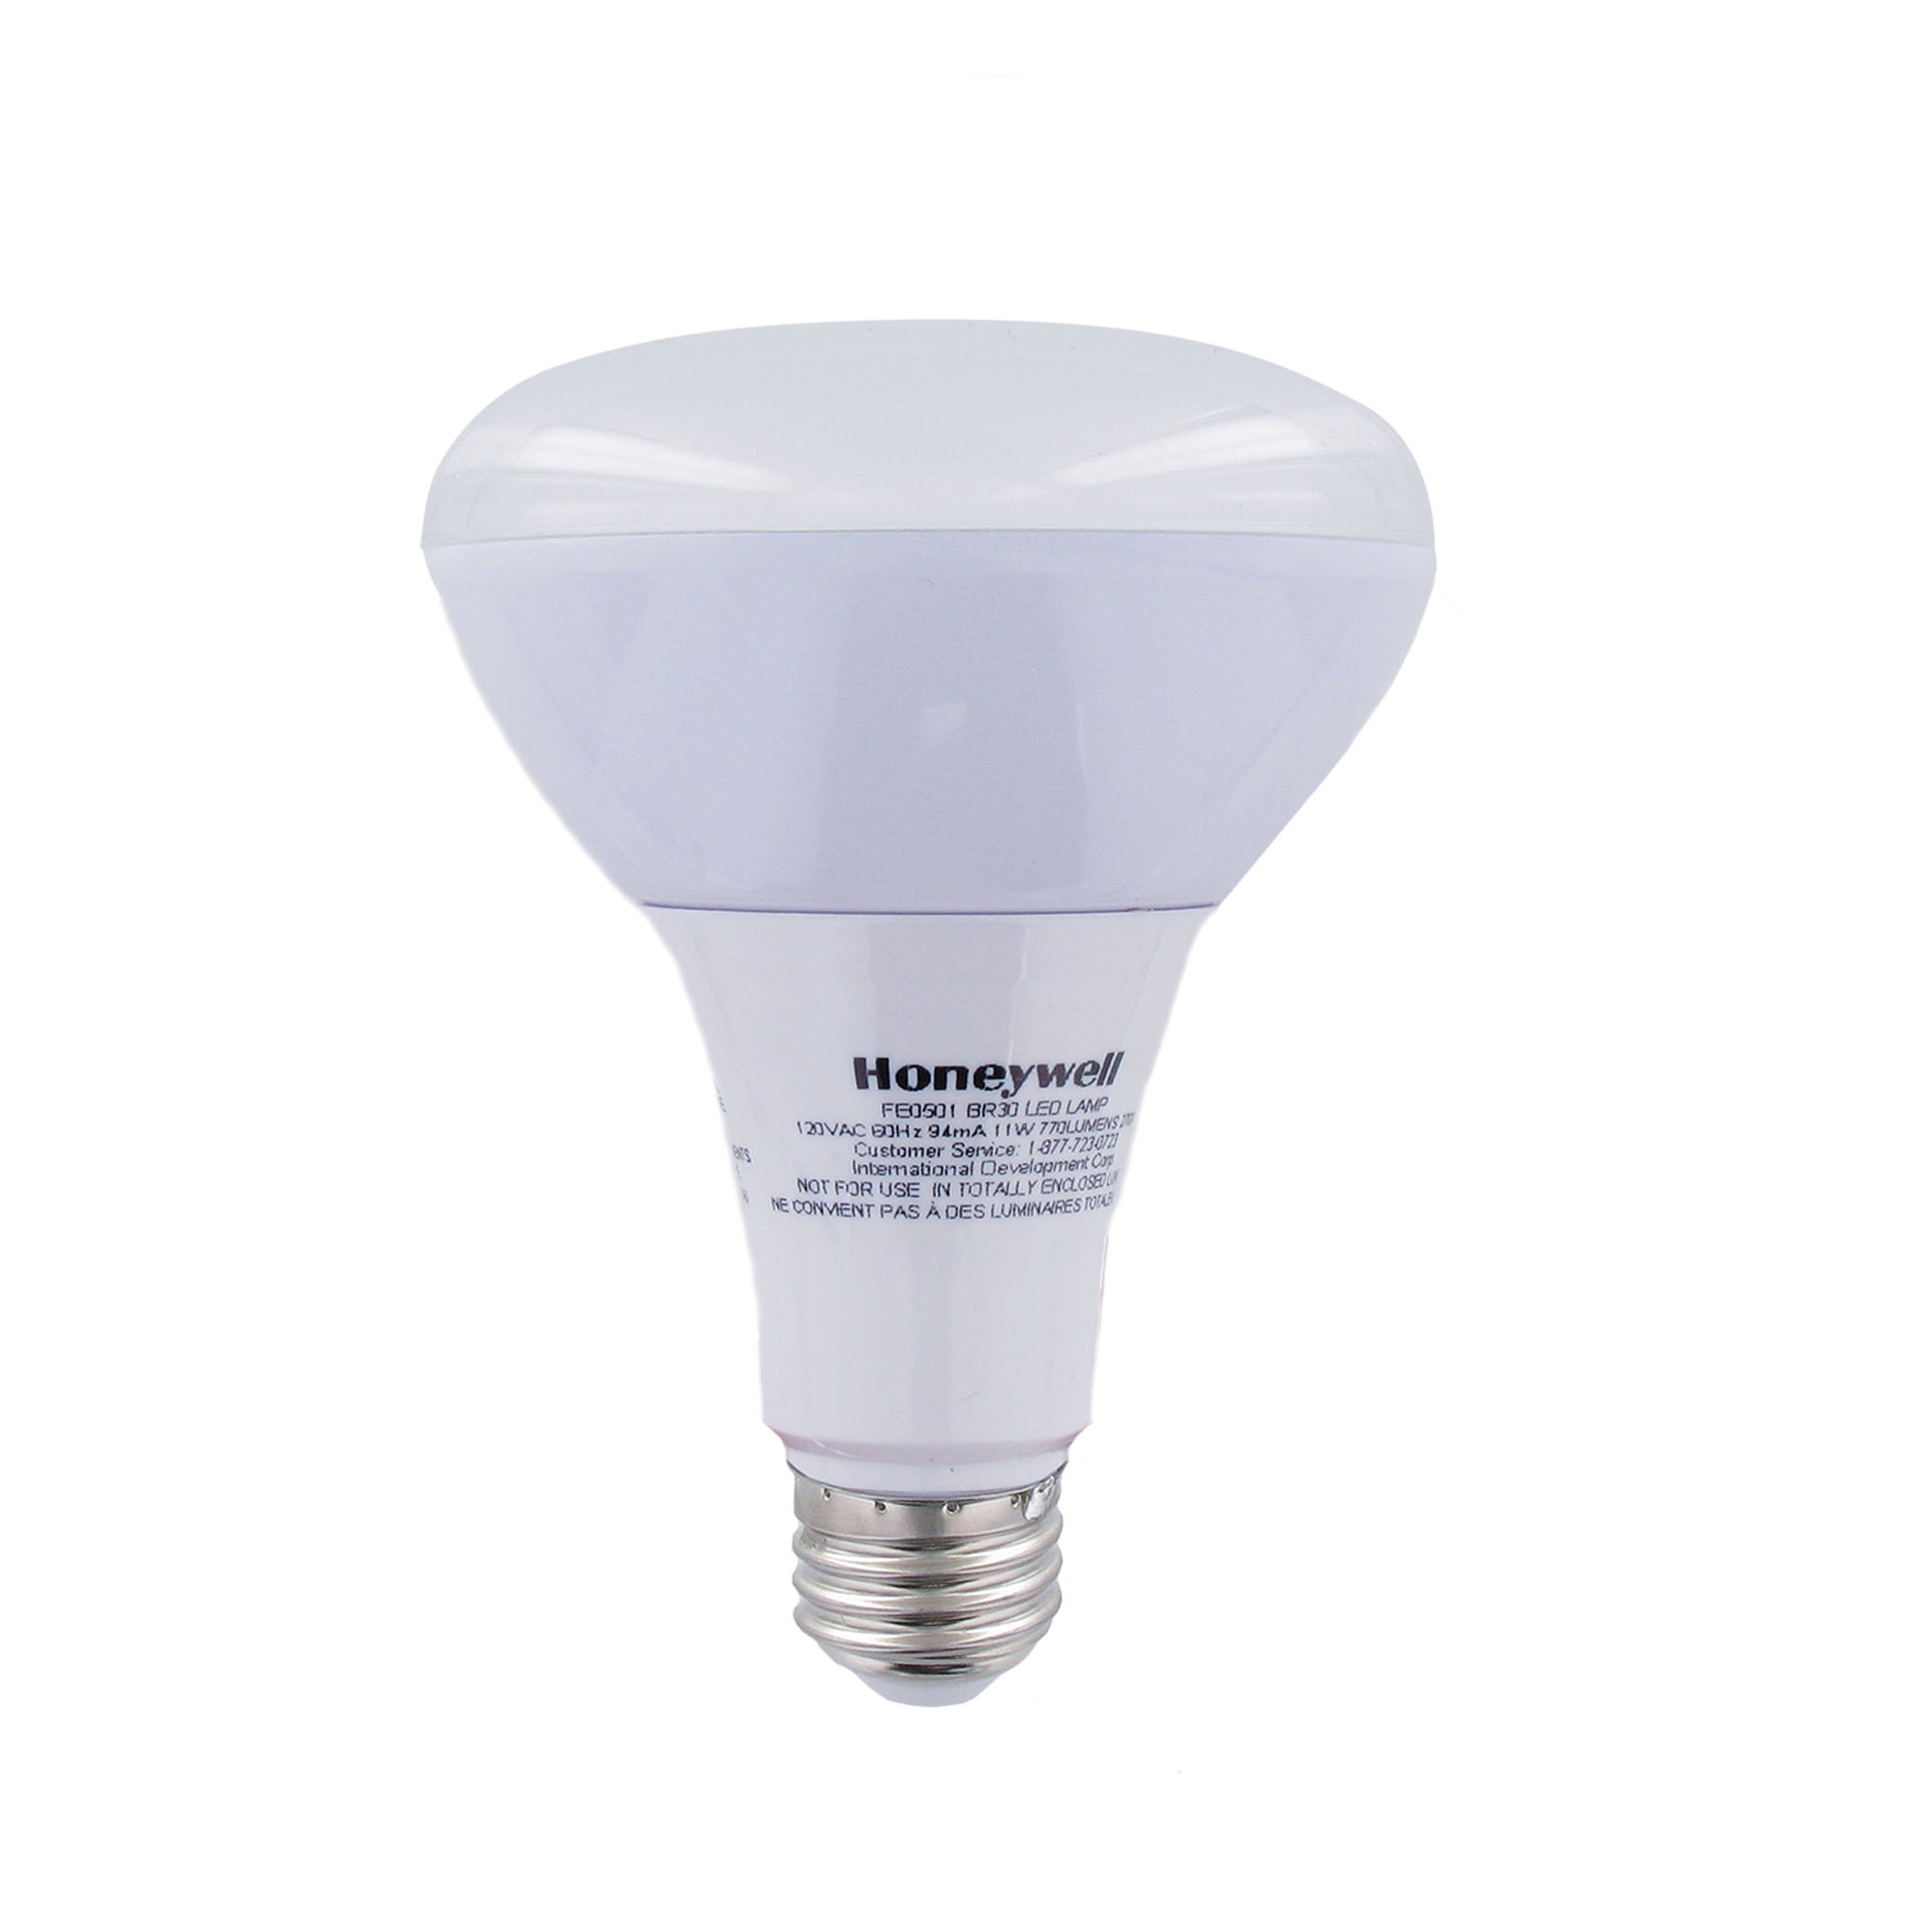 fi connected lifx flat bulb connect packaging wi lighting screw led color light home edison your products smart